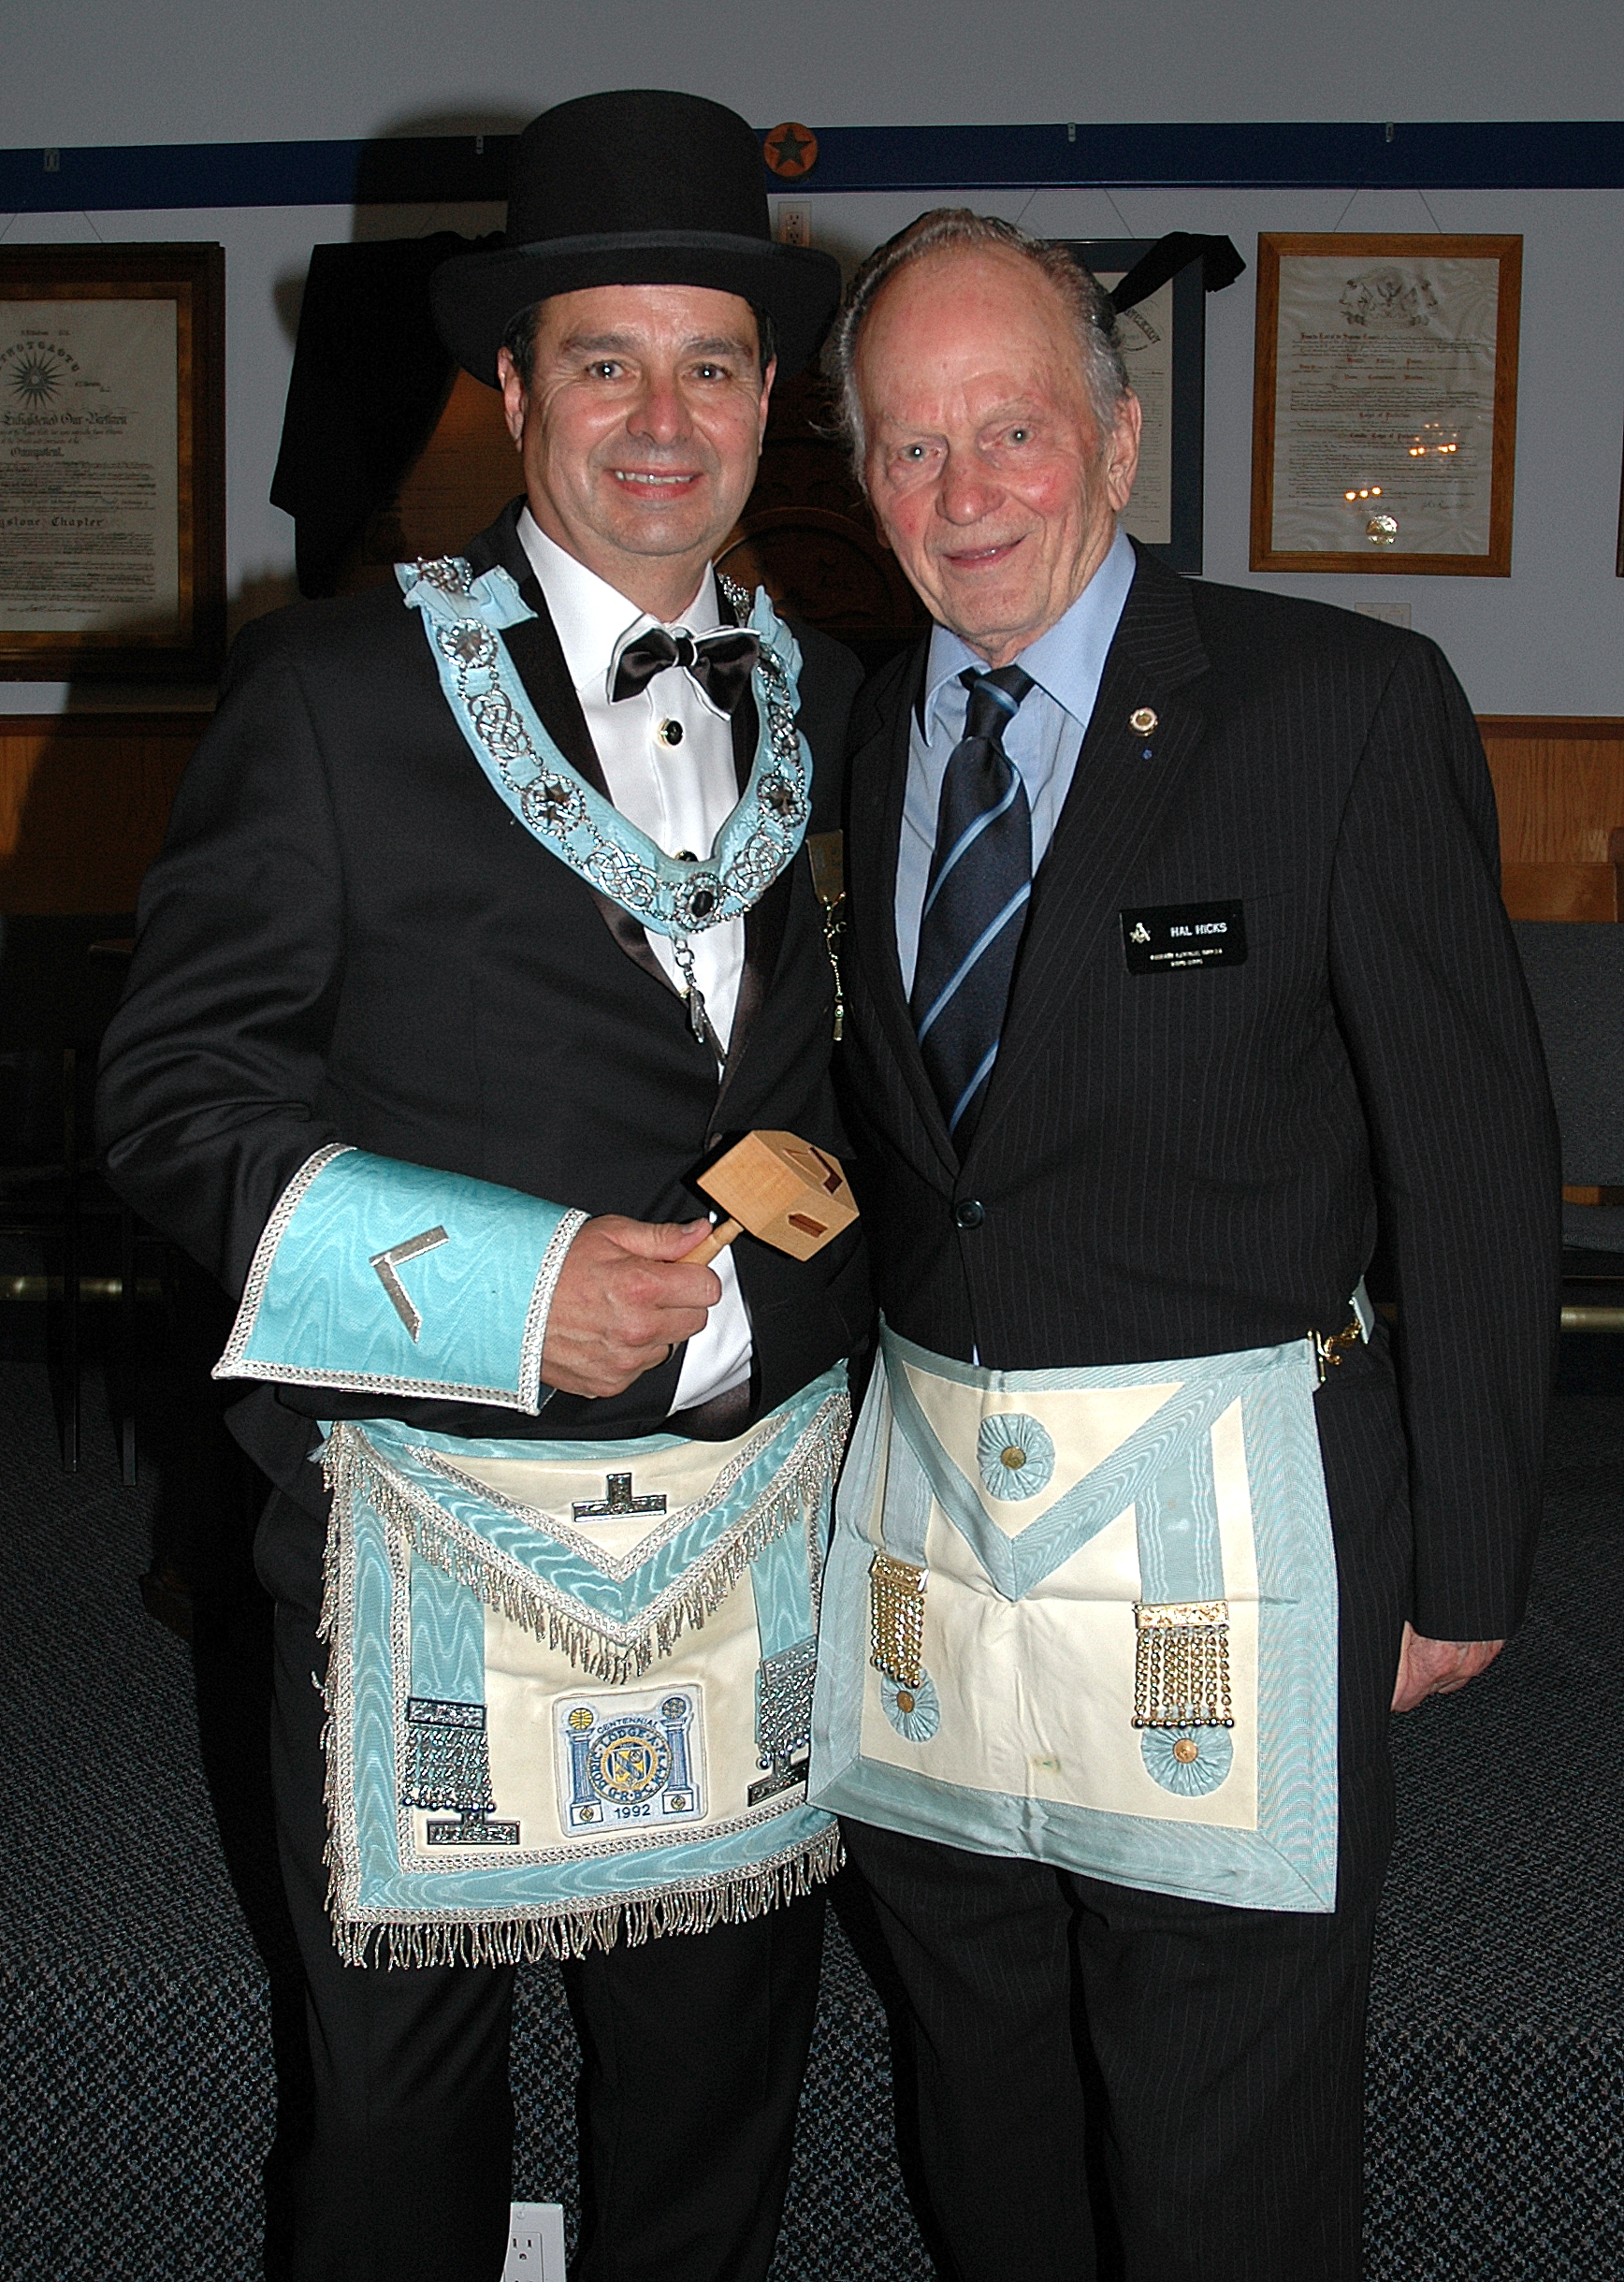 Worshipful Master Gerry Flesh